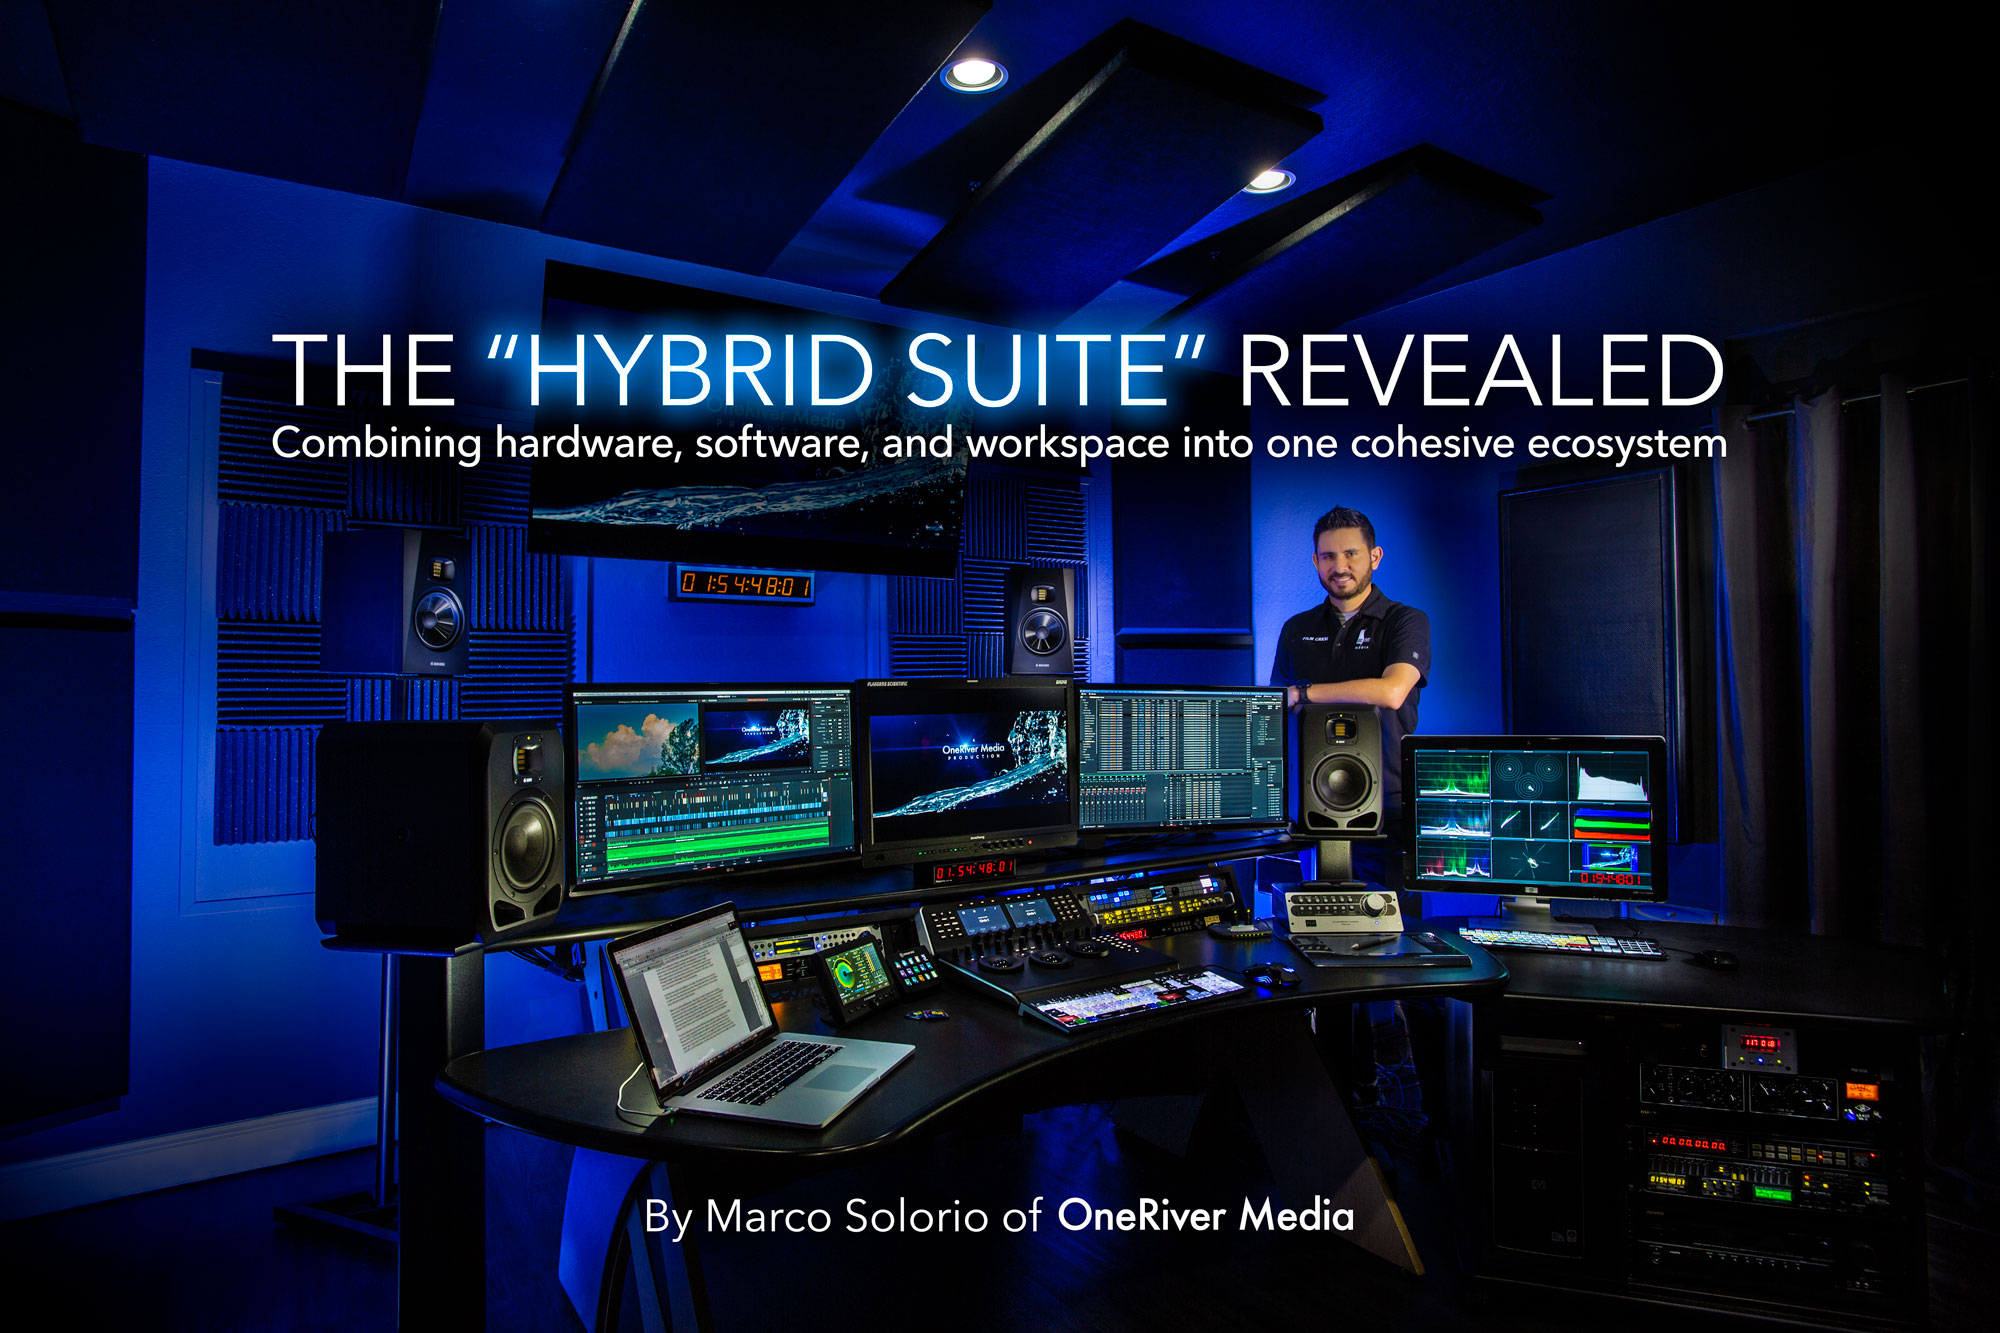 Marco Solorio of OneRiver Media in the Hybrid Suite